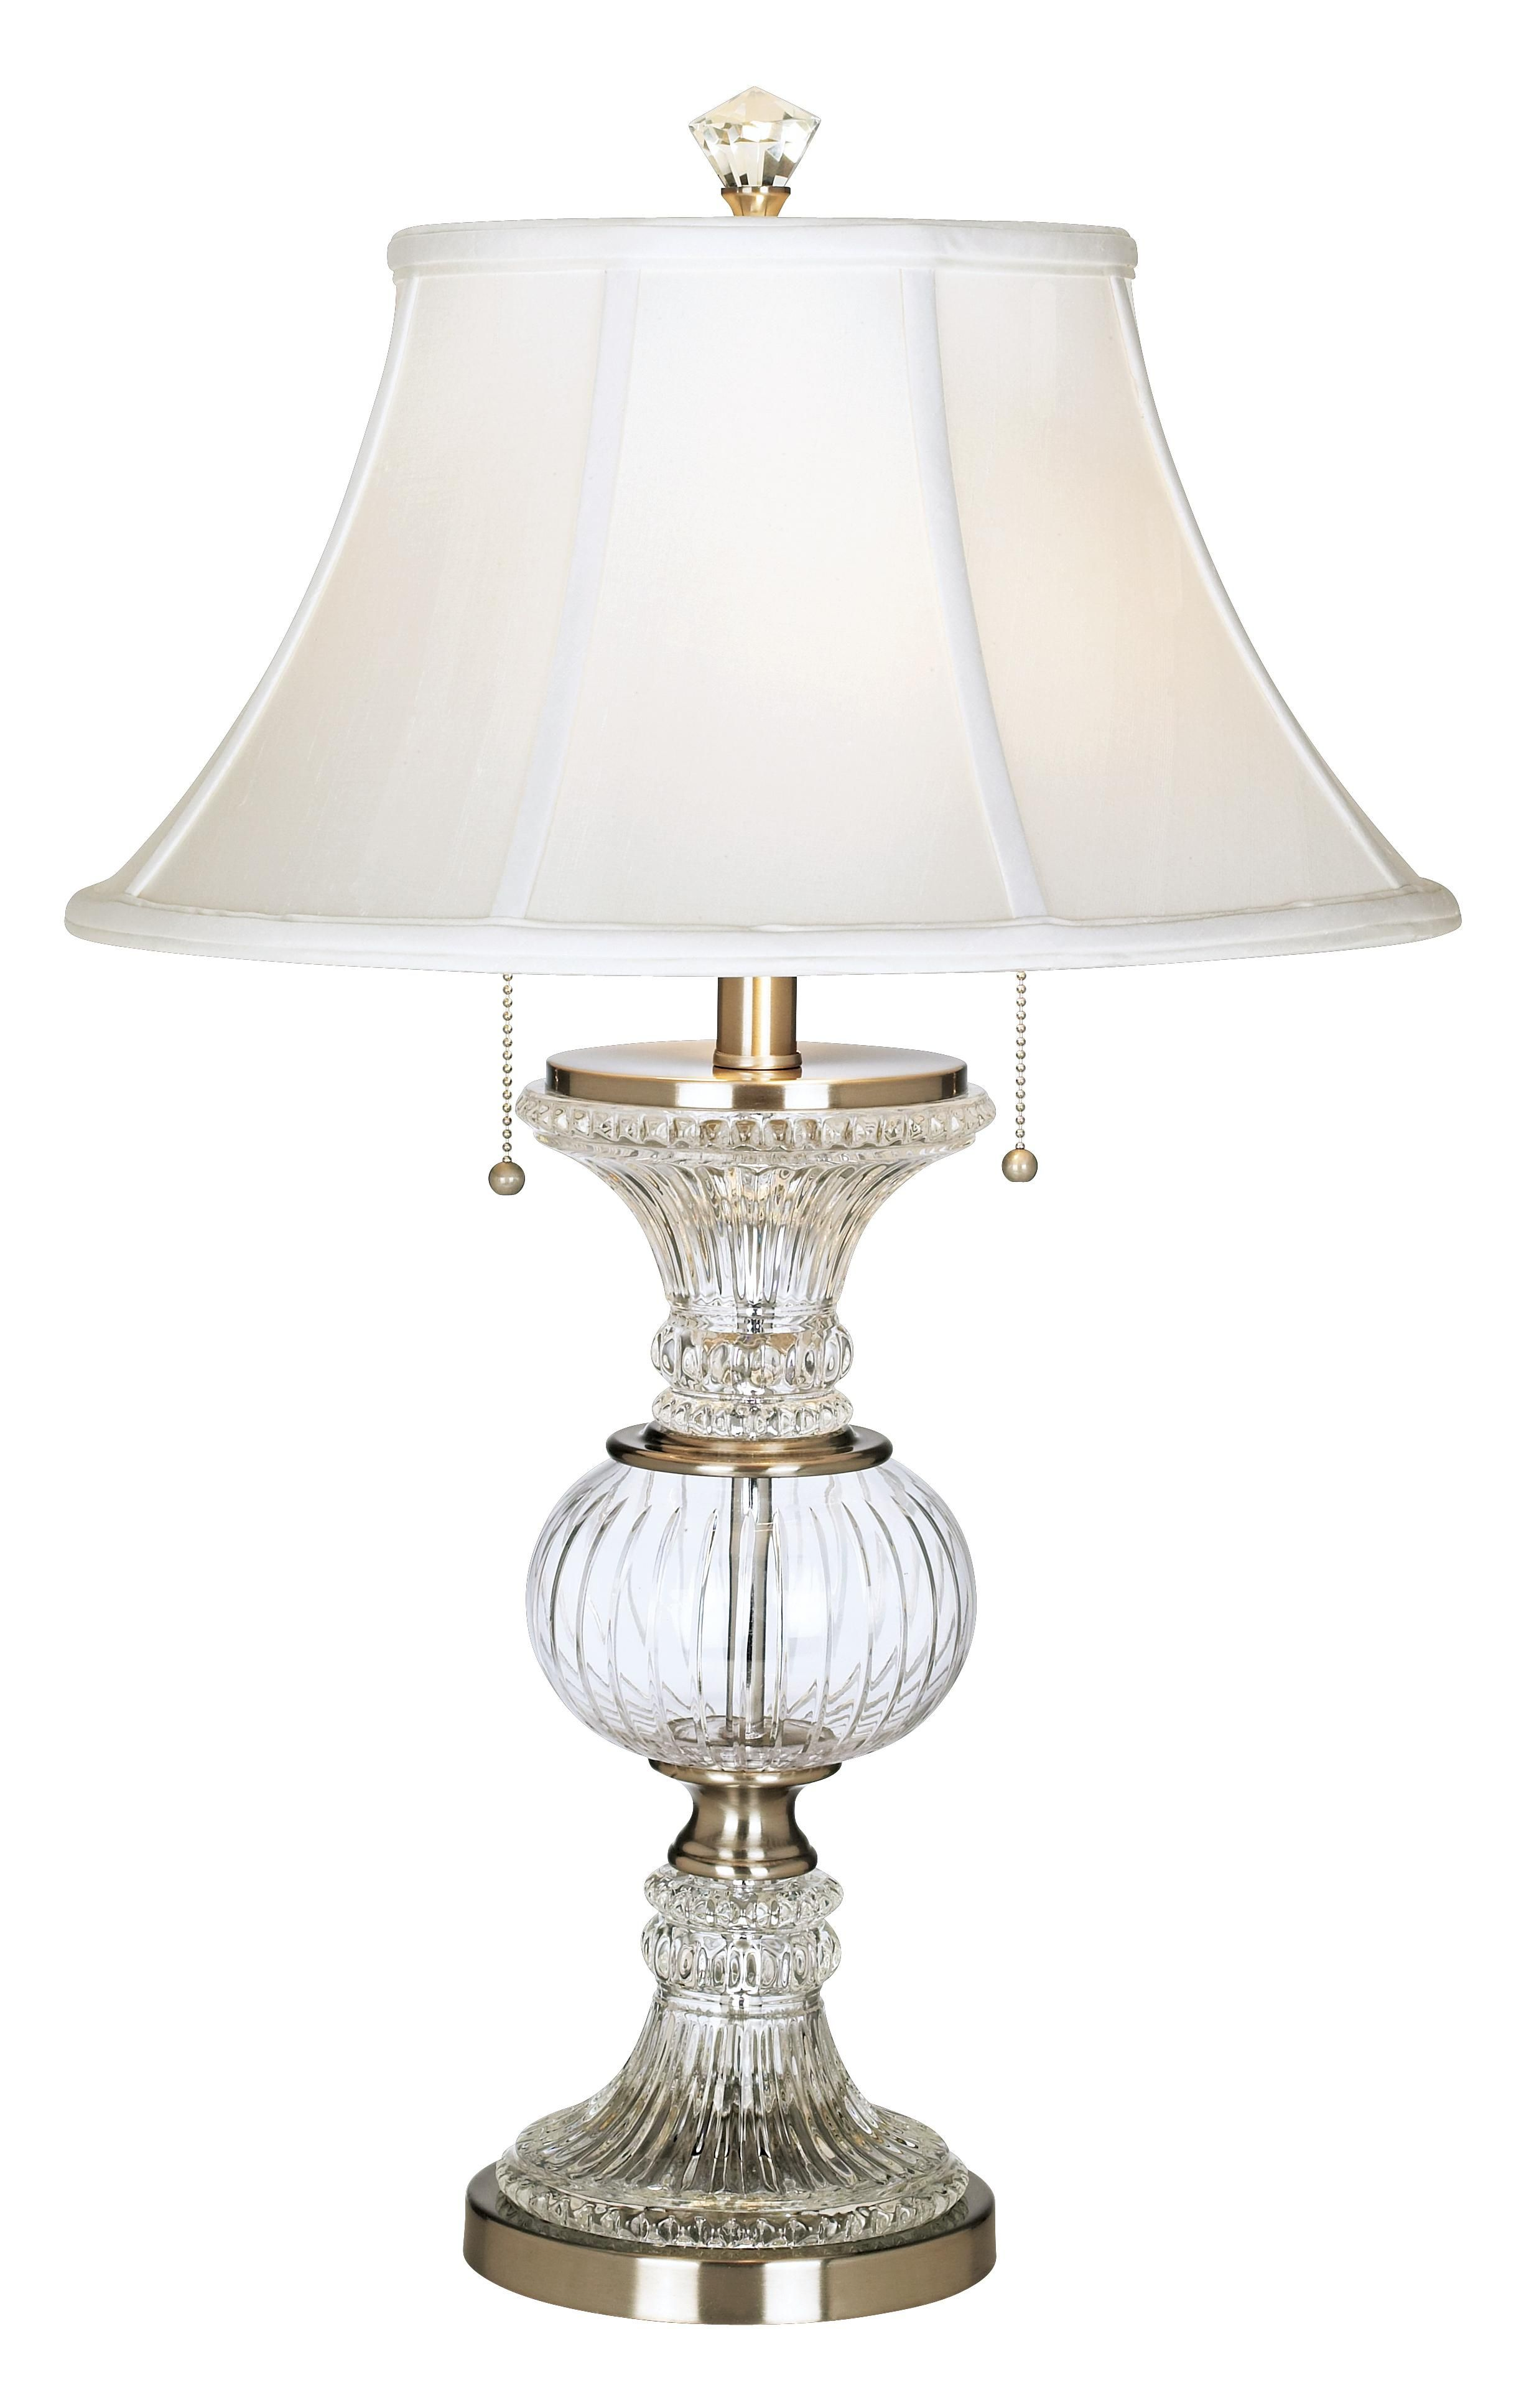 Dale Tiffany Crystal Globe Table Lamp 62775 Lamps Plus Crystal Table Lamps Lamp Design Table Lamp Crystal and brass table lamps